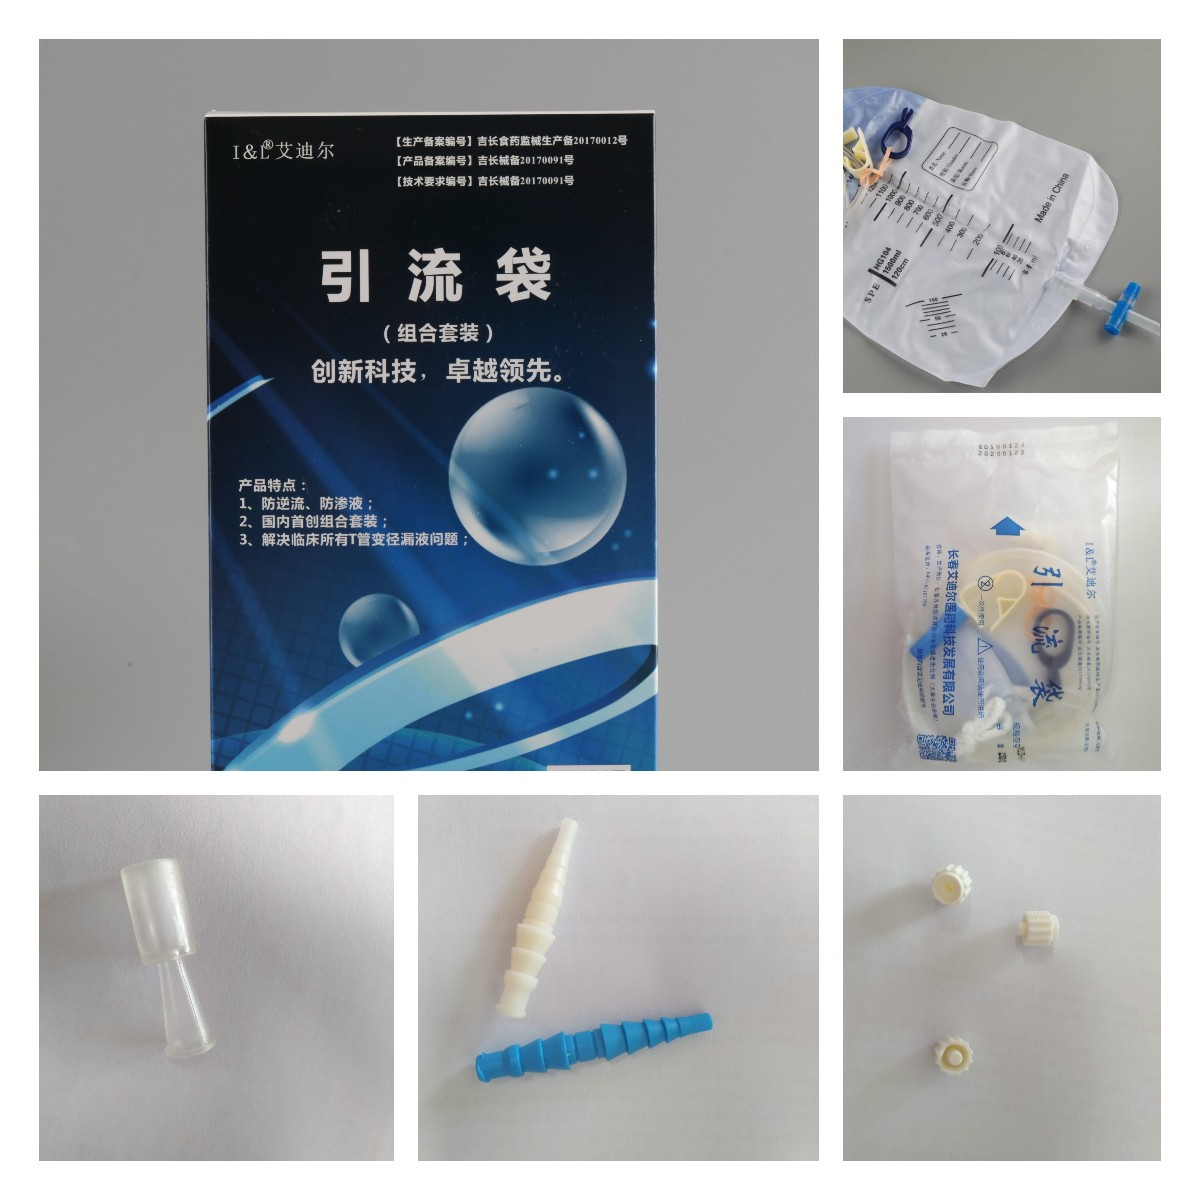 Layout, Urine Drainage Bag Kit